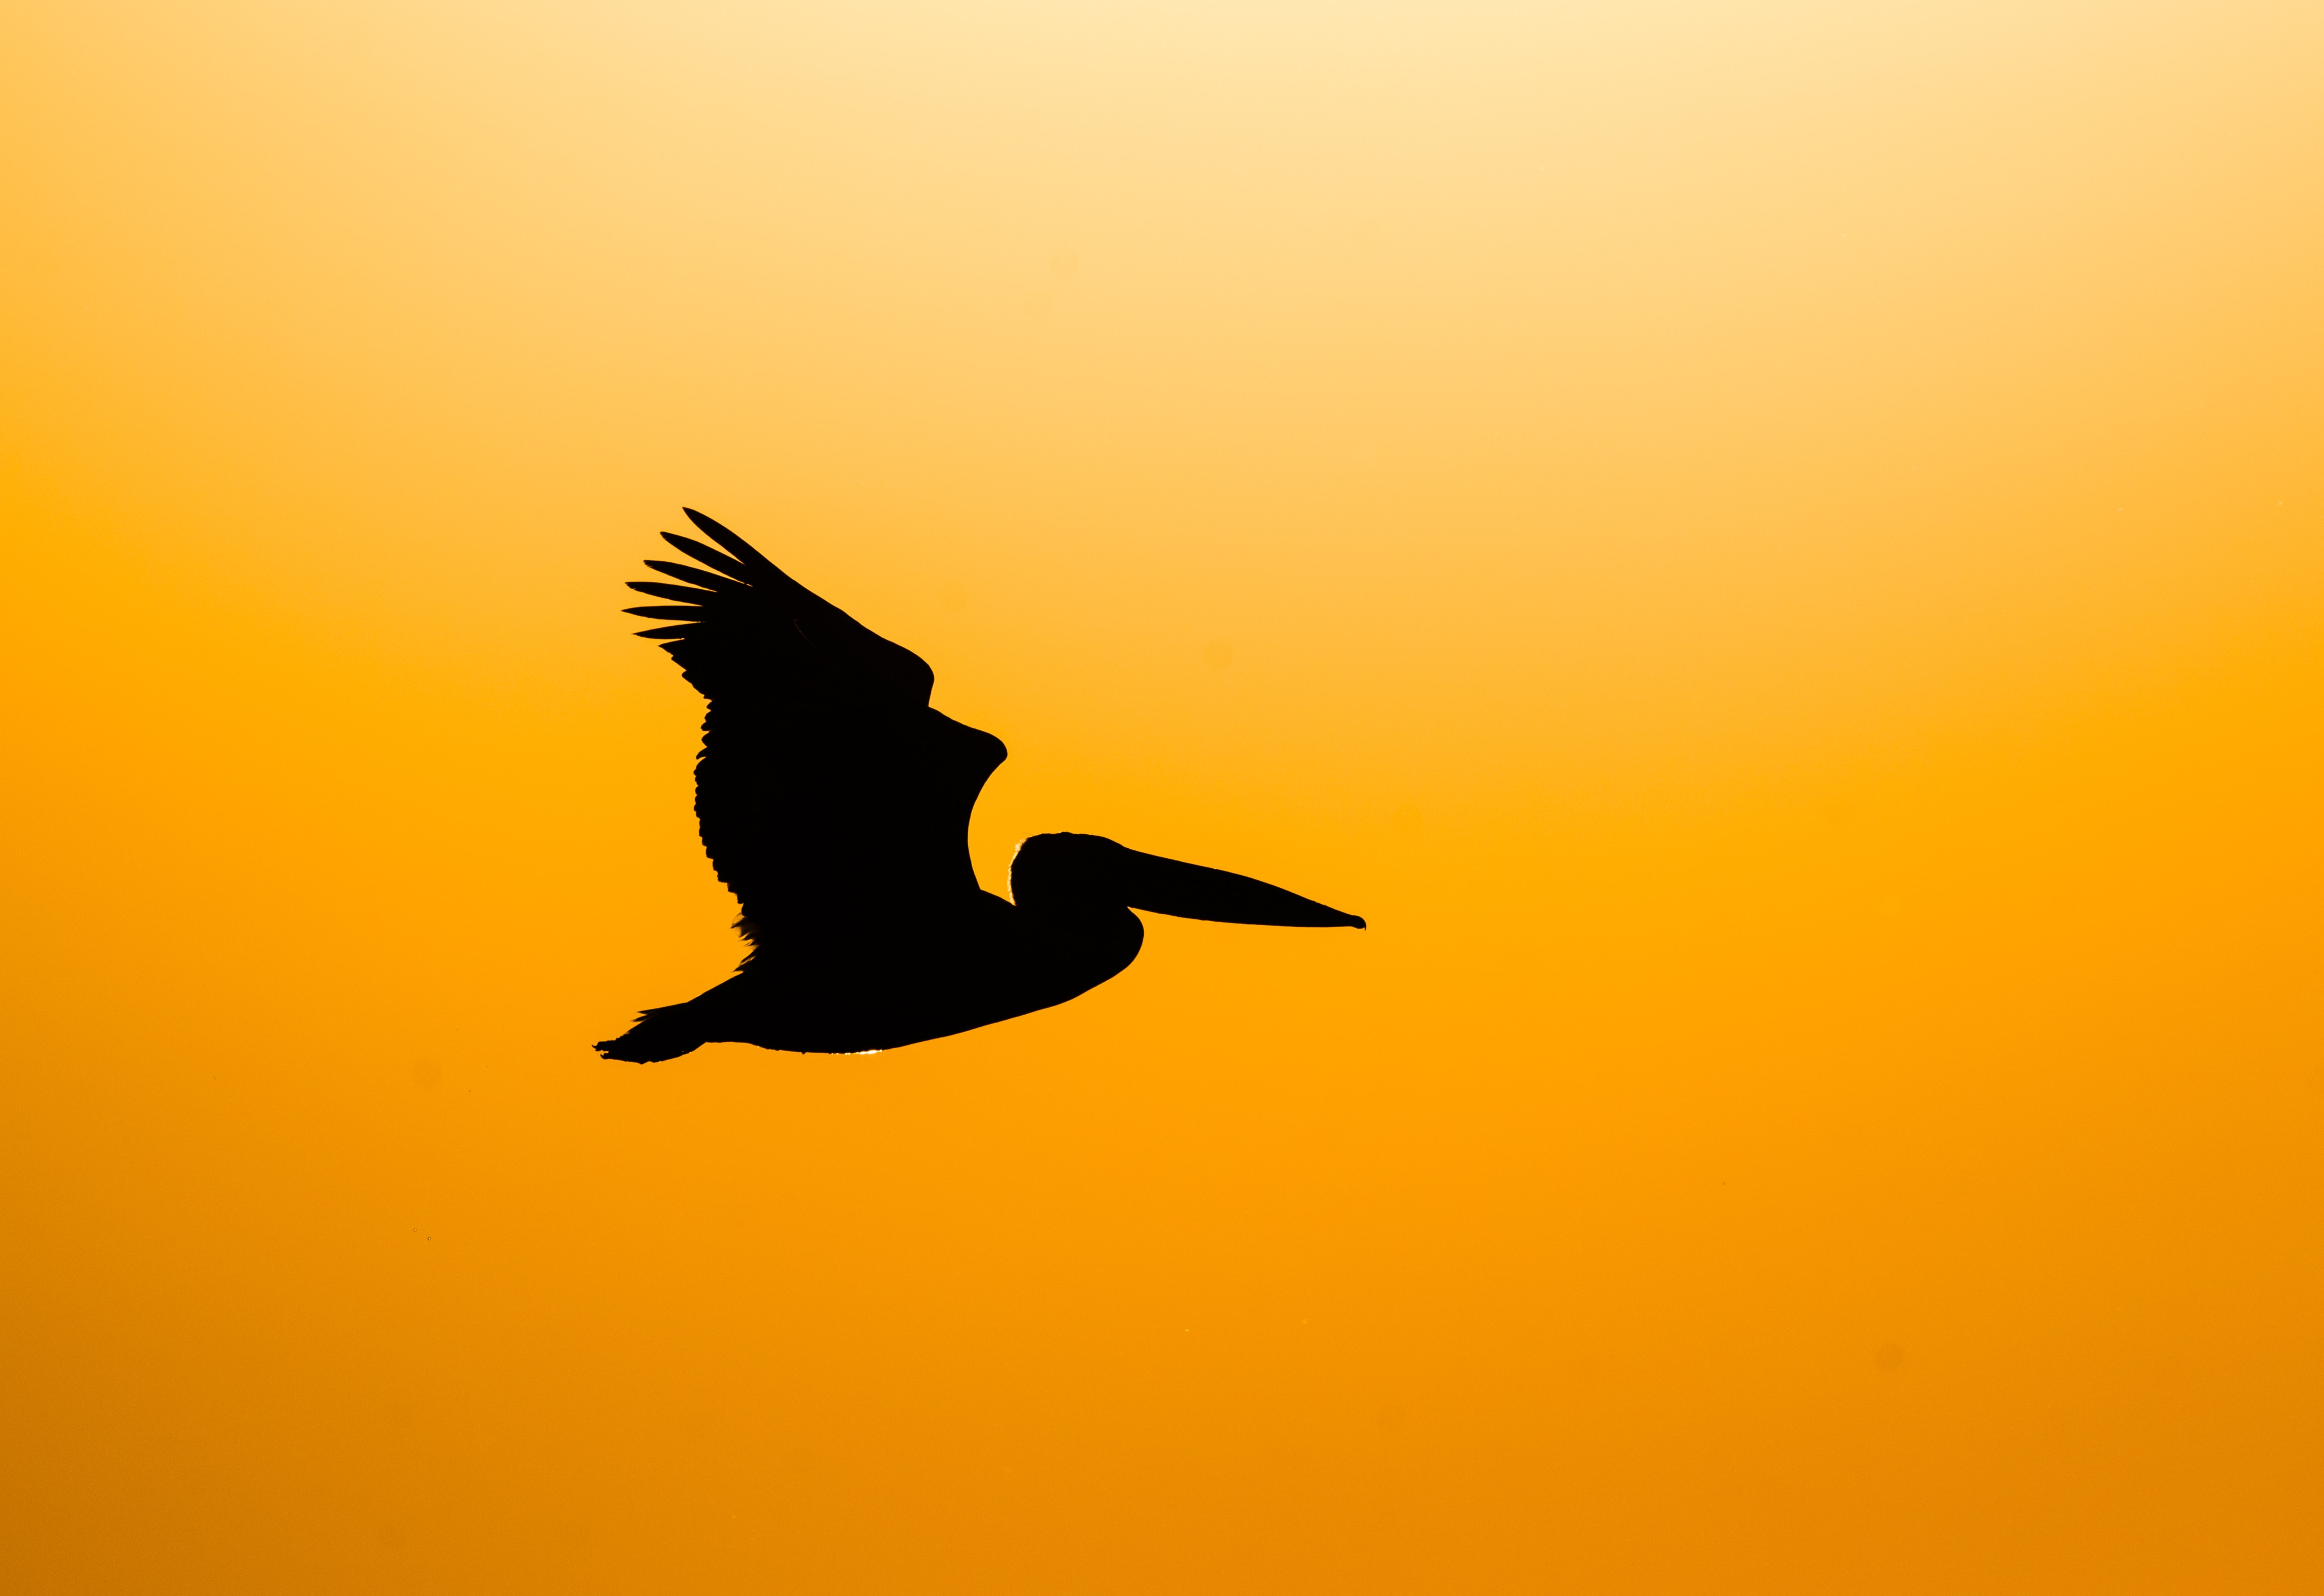 91194 download wallpaper Animals, Pelican, Bird, Silhouette, Dark, Fly screensavers and pictures for free